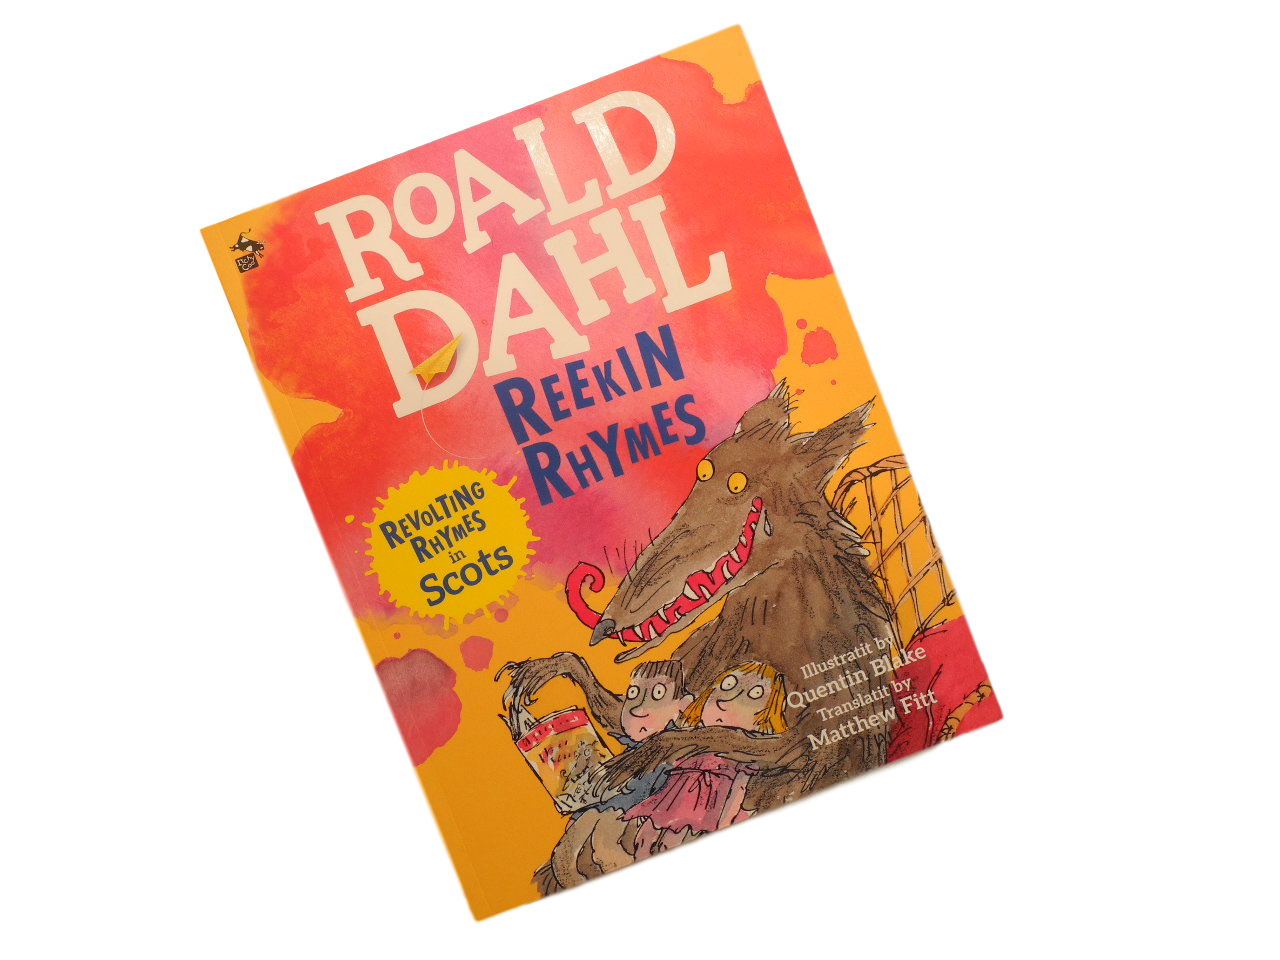 Revolting Rhymes by Roald Dahl translated into Scots language